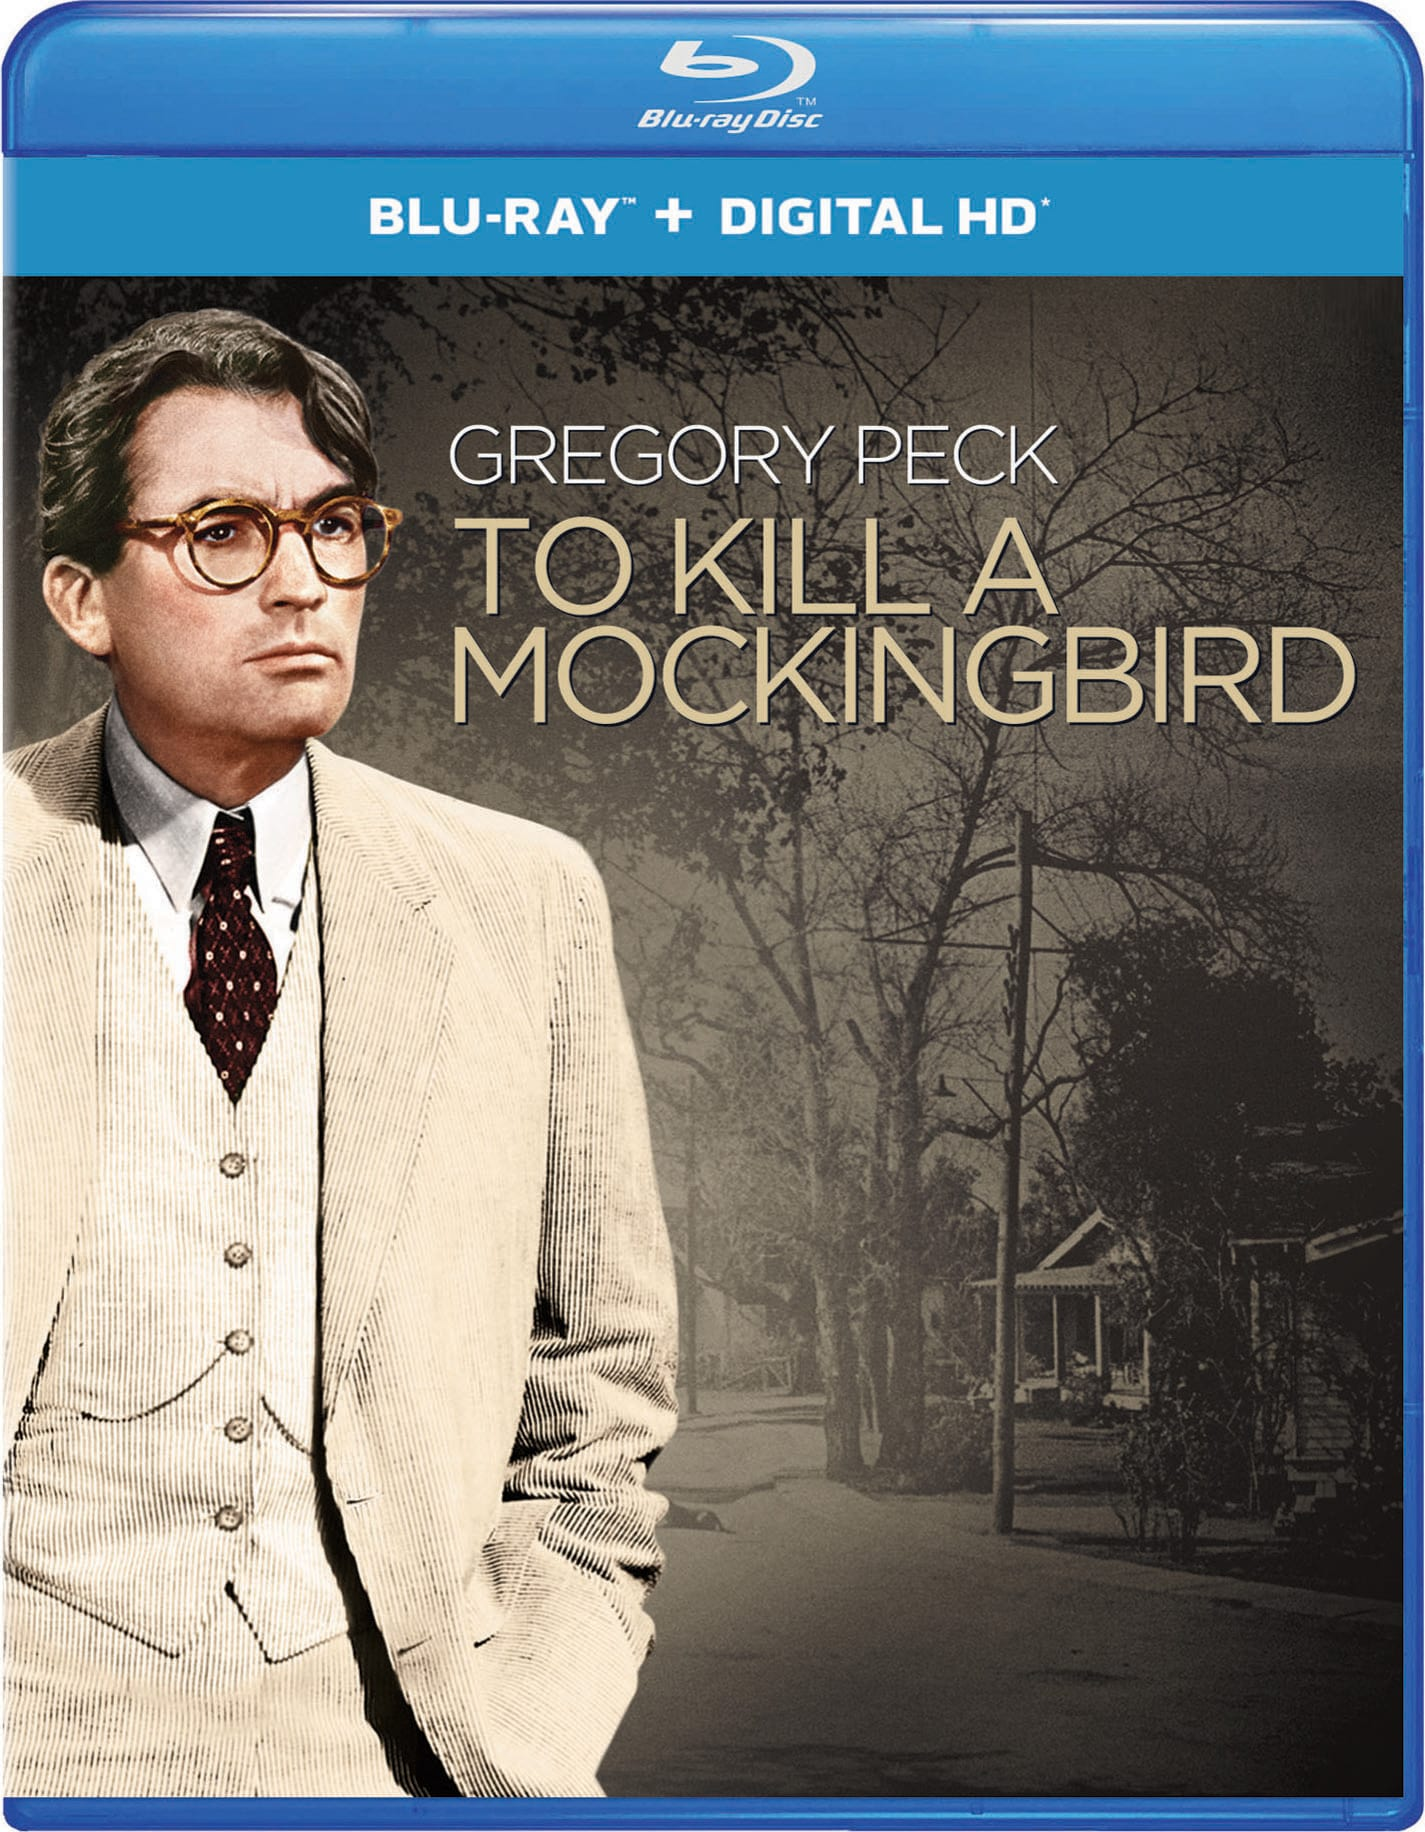 To Kill a Mockingbird (Digital) [Blu-ray]